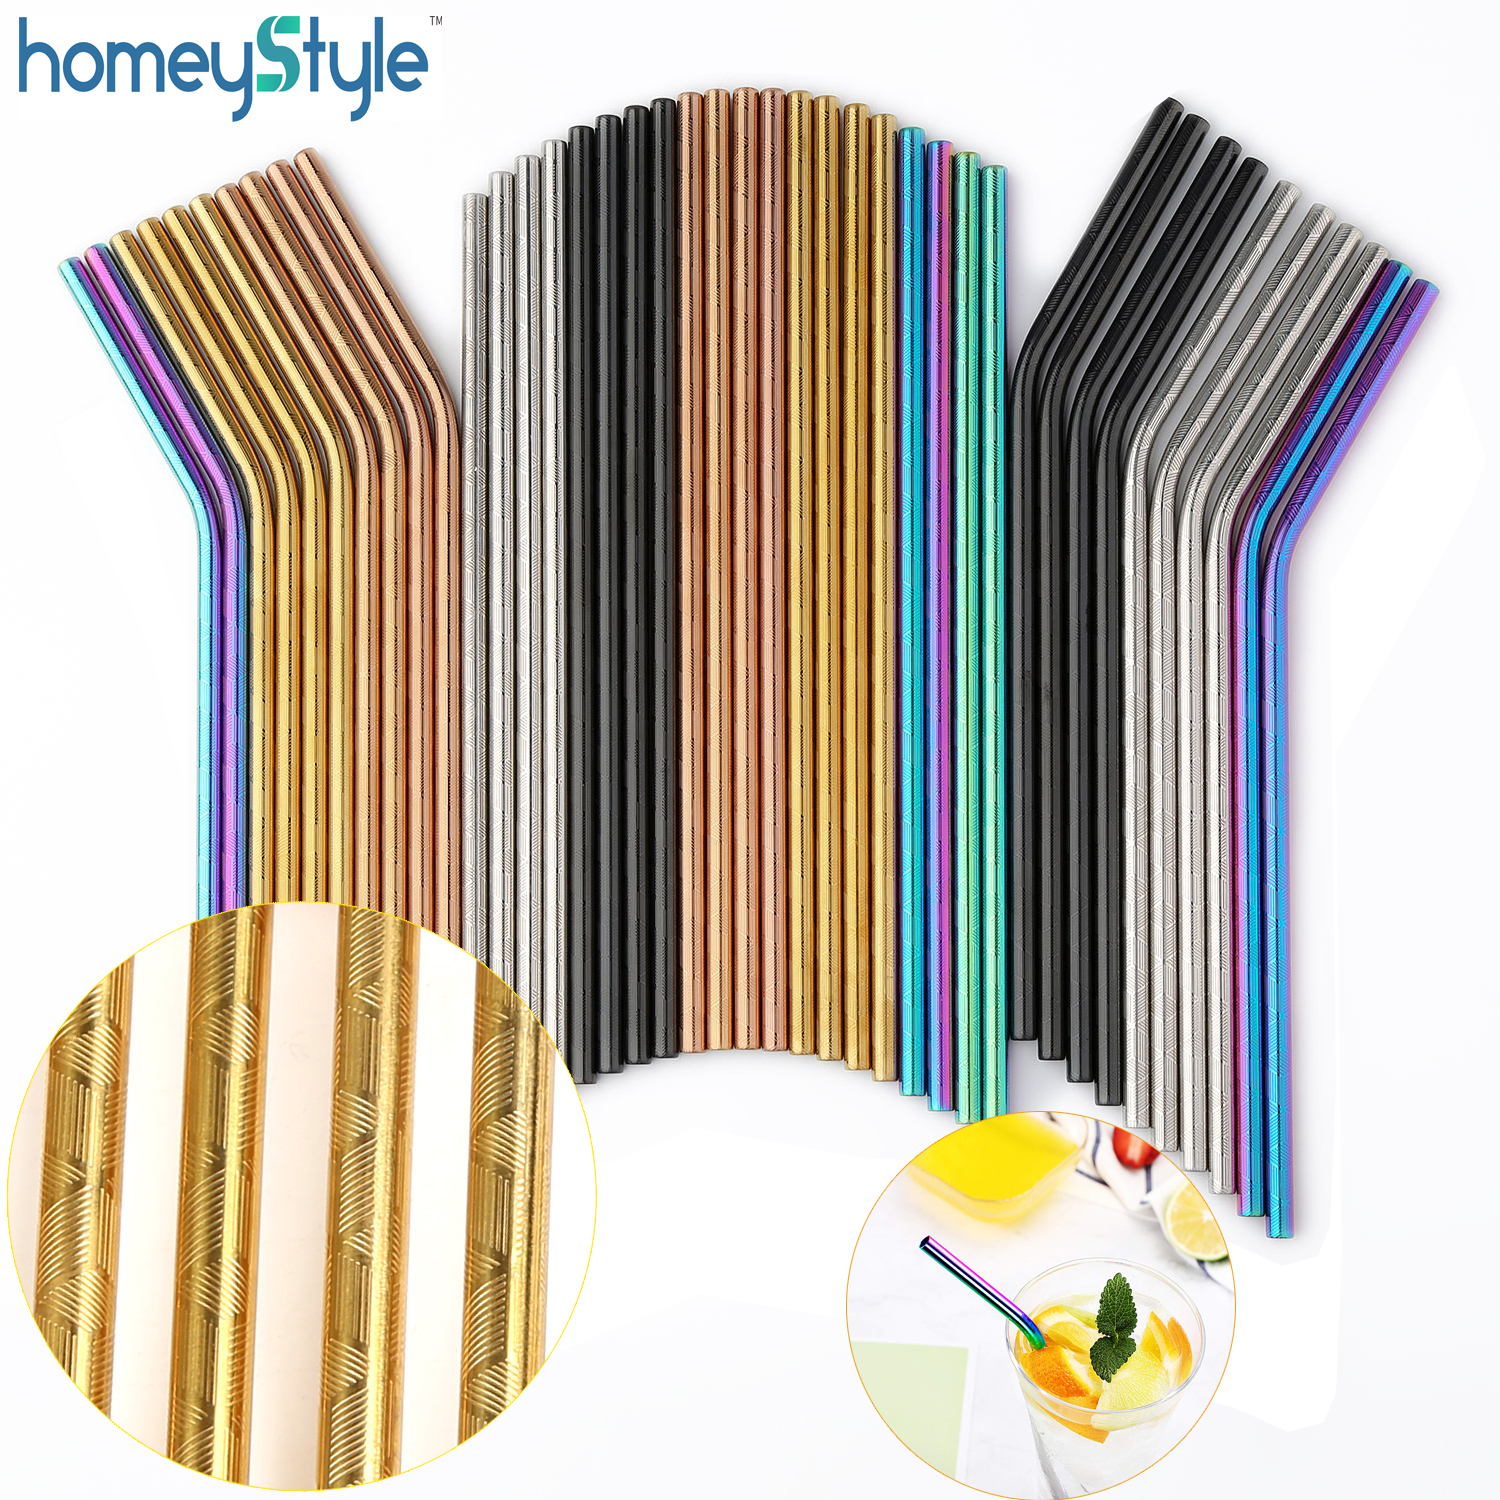 100 Pcs Patterned Wholesale Metal Straws Colorful Reusable Stainless Steel Drinking Tubes E co Friendly Portable